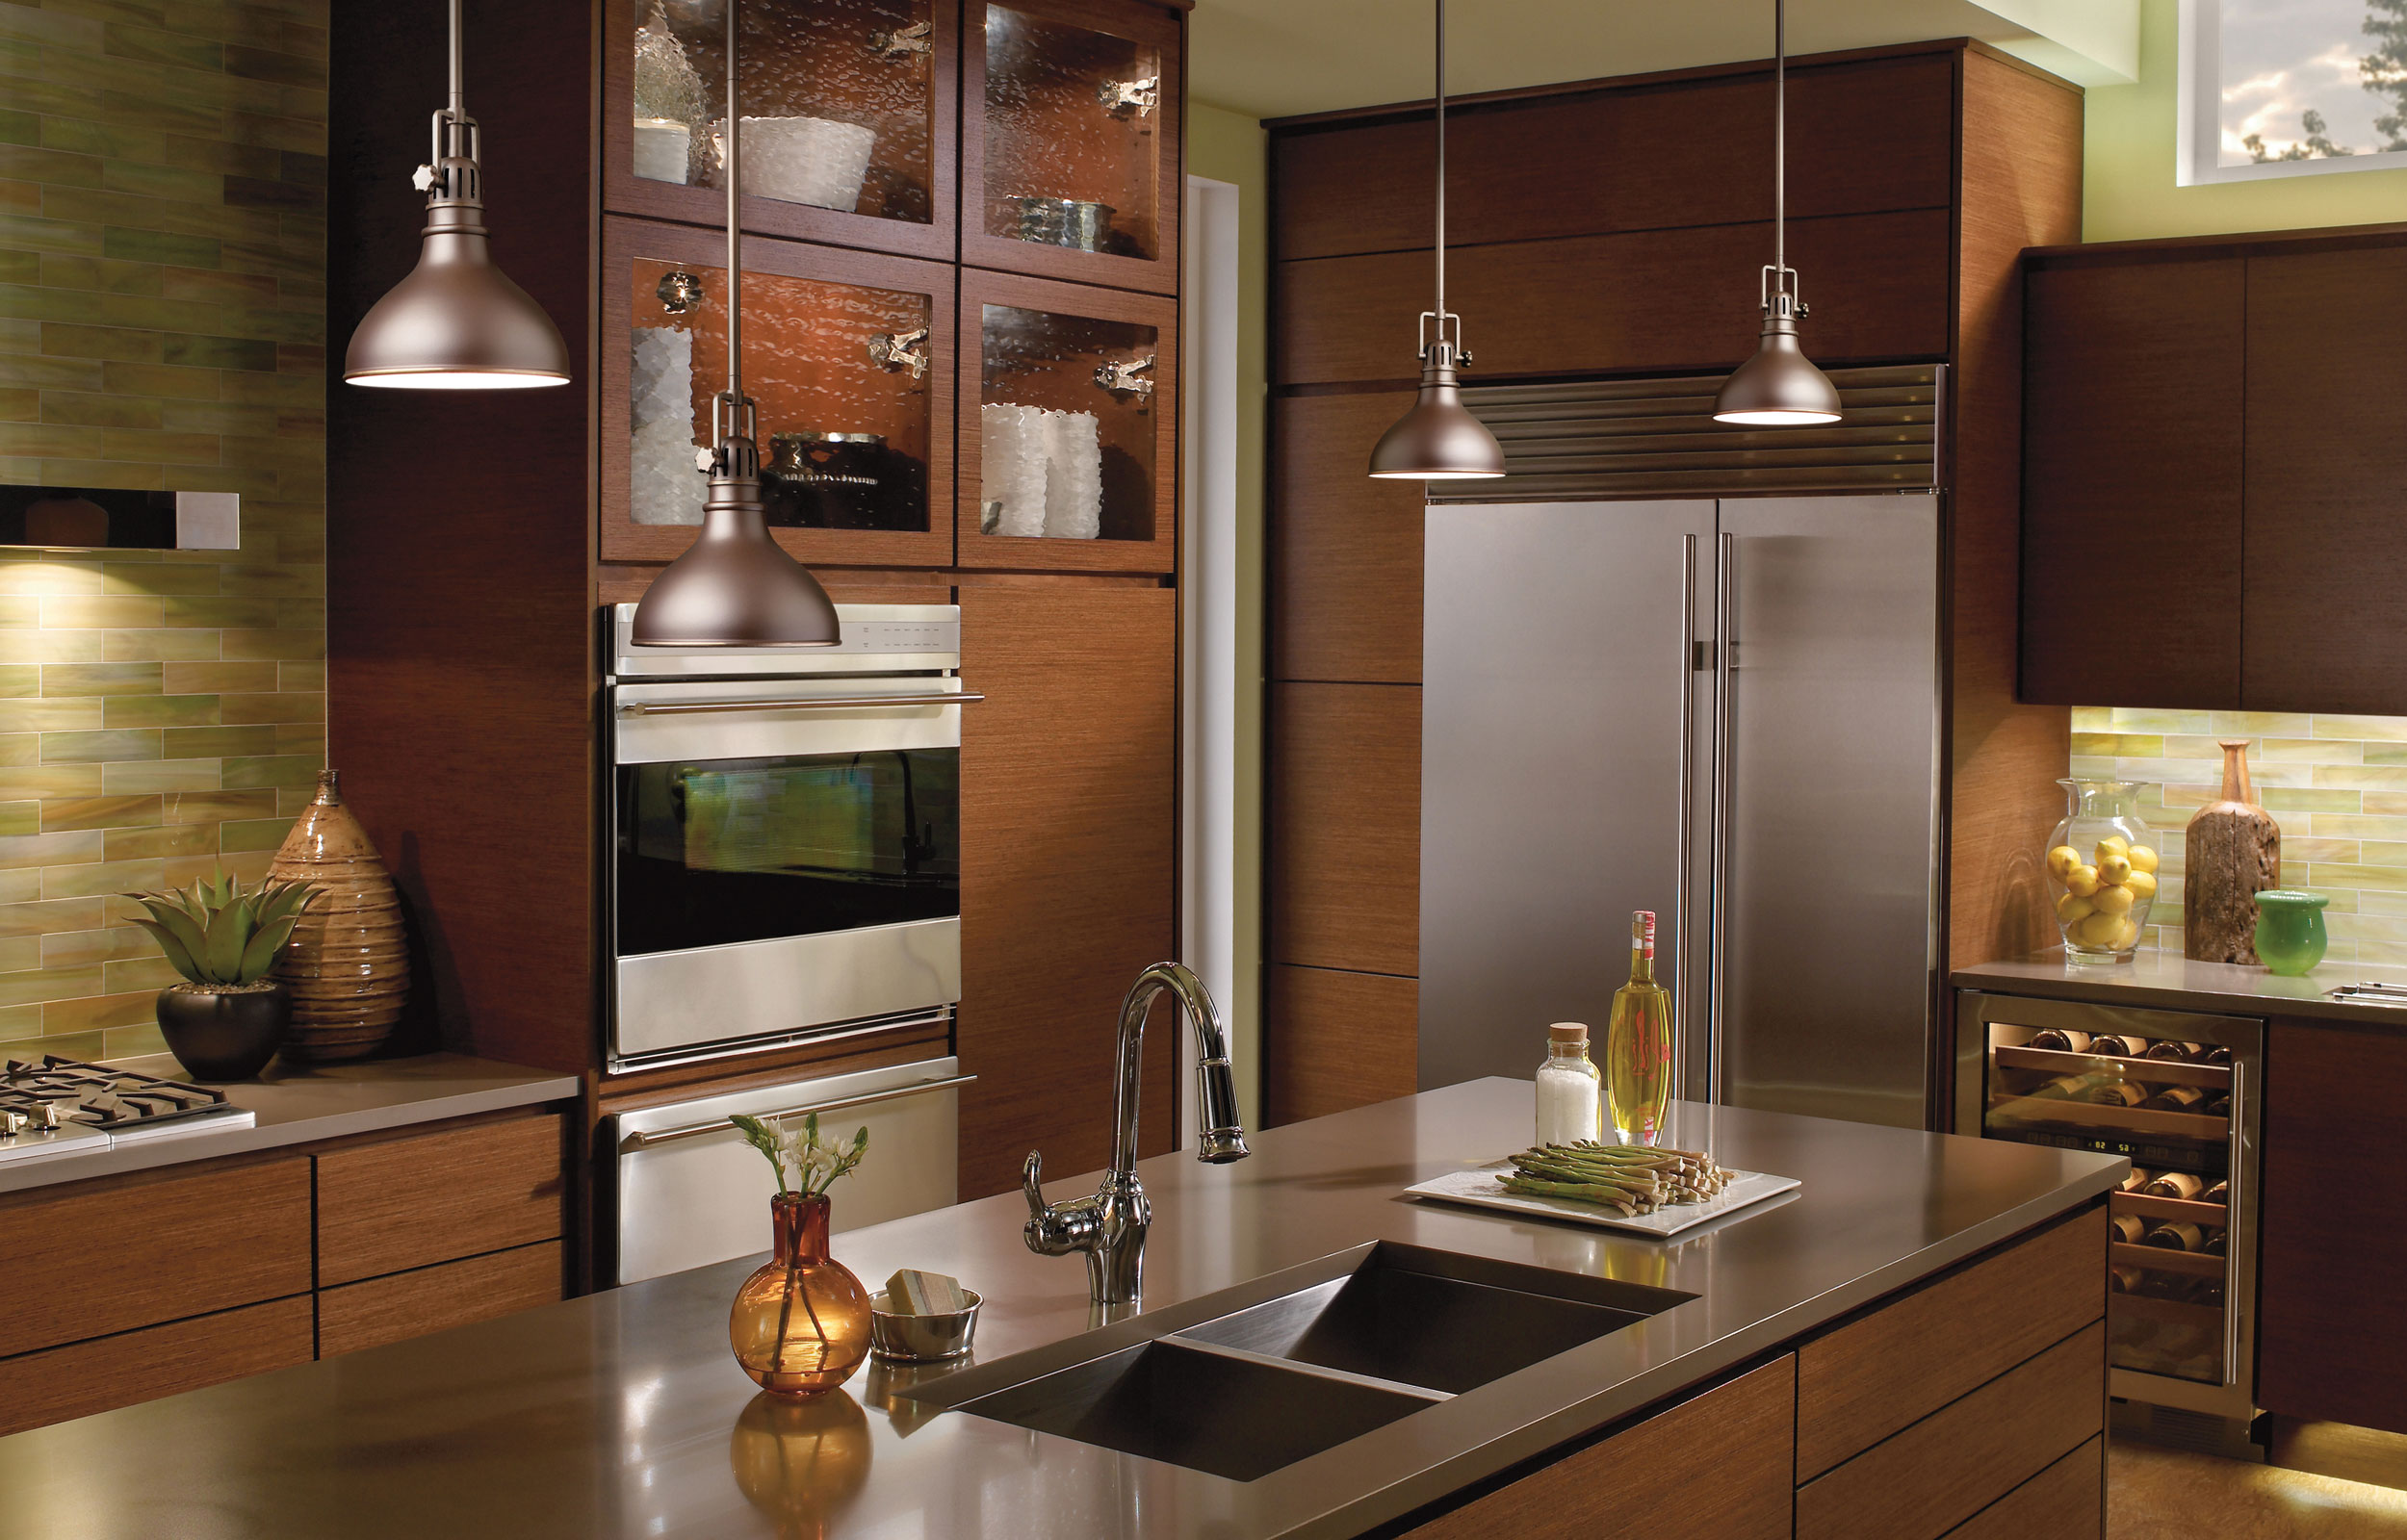 Kitchen Lighting Inspiration Lightstyle Of Tampa Bay - Designer kitchen lighting fixtures